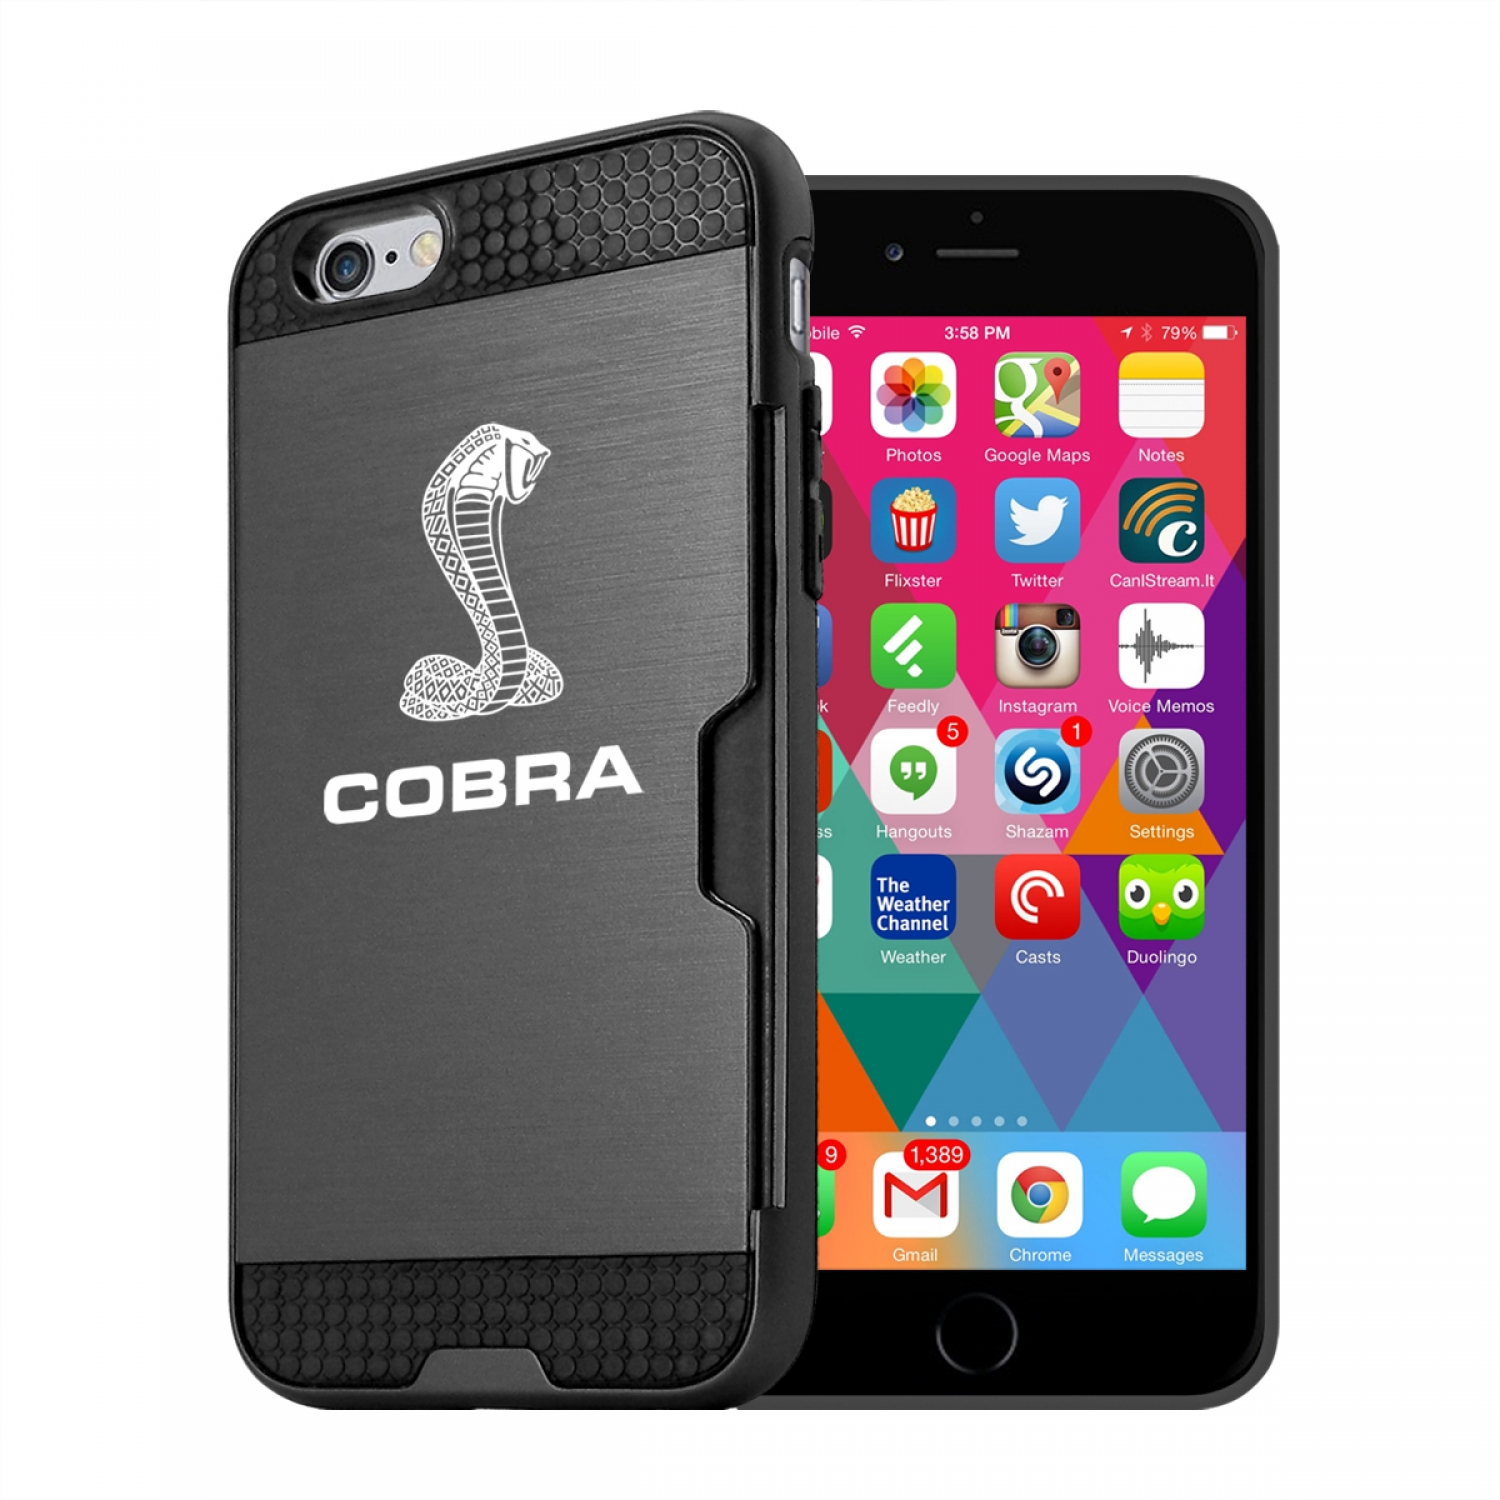 Ford Mustang Cobra iPhone 6 6s Ultra Thin TPU Black Phone Case with Credit Card Slot Wallet